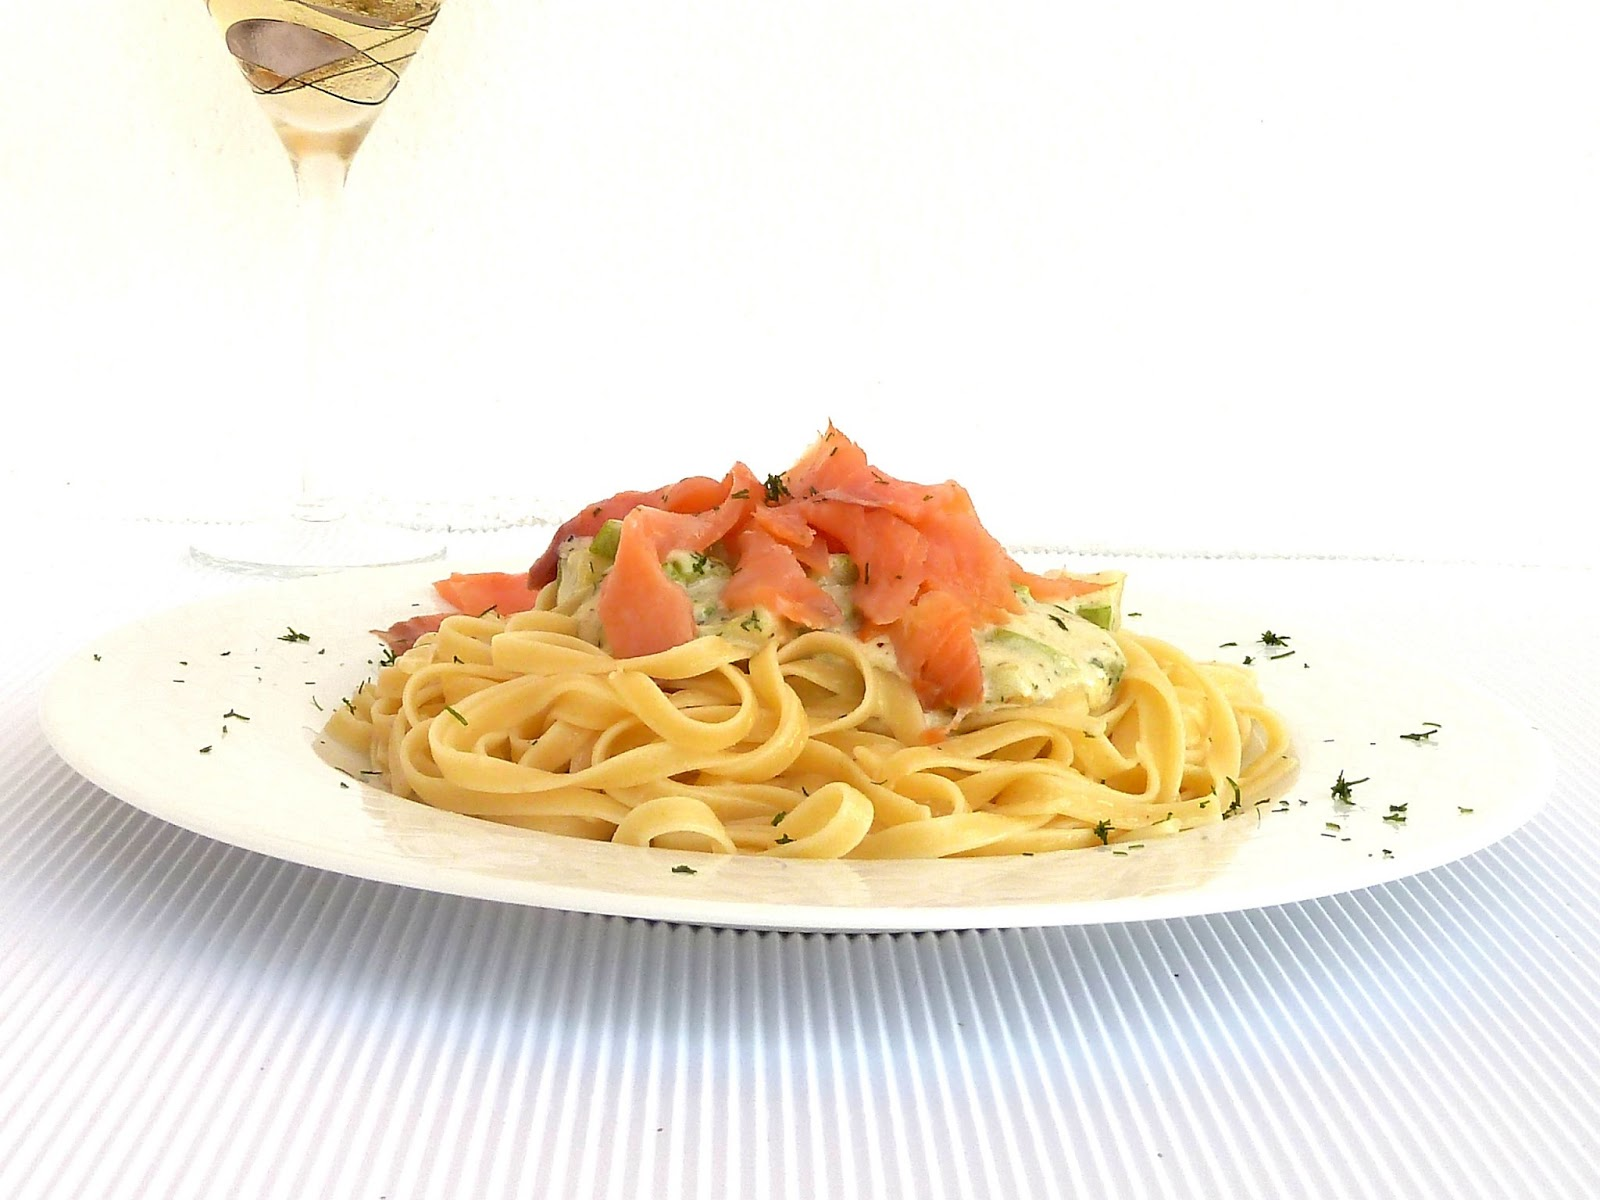 Linguini with salmon - Guest post from PinezaJewelry